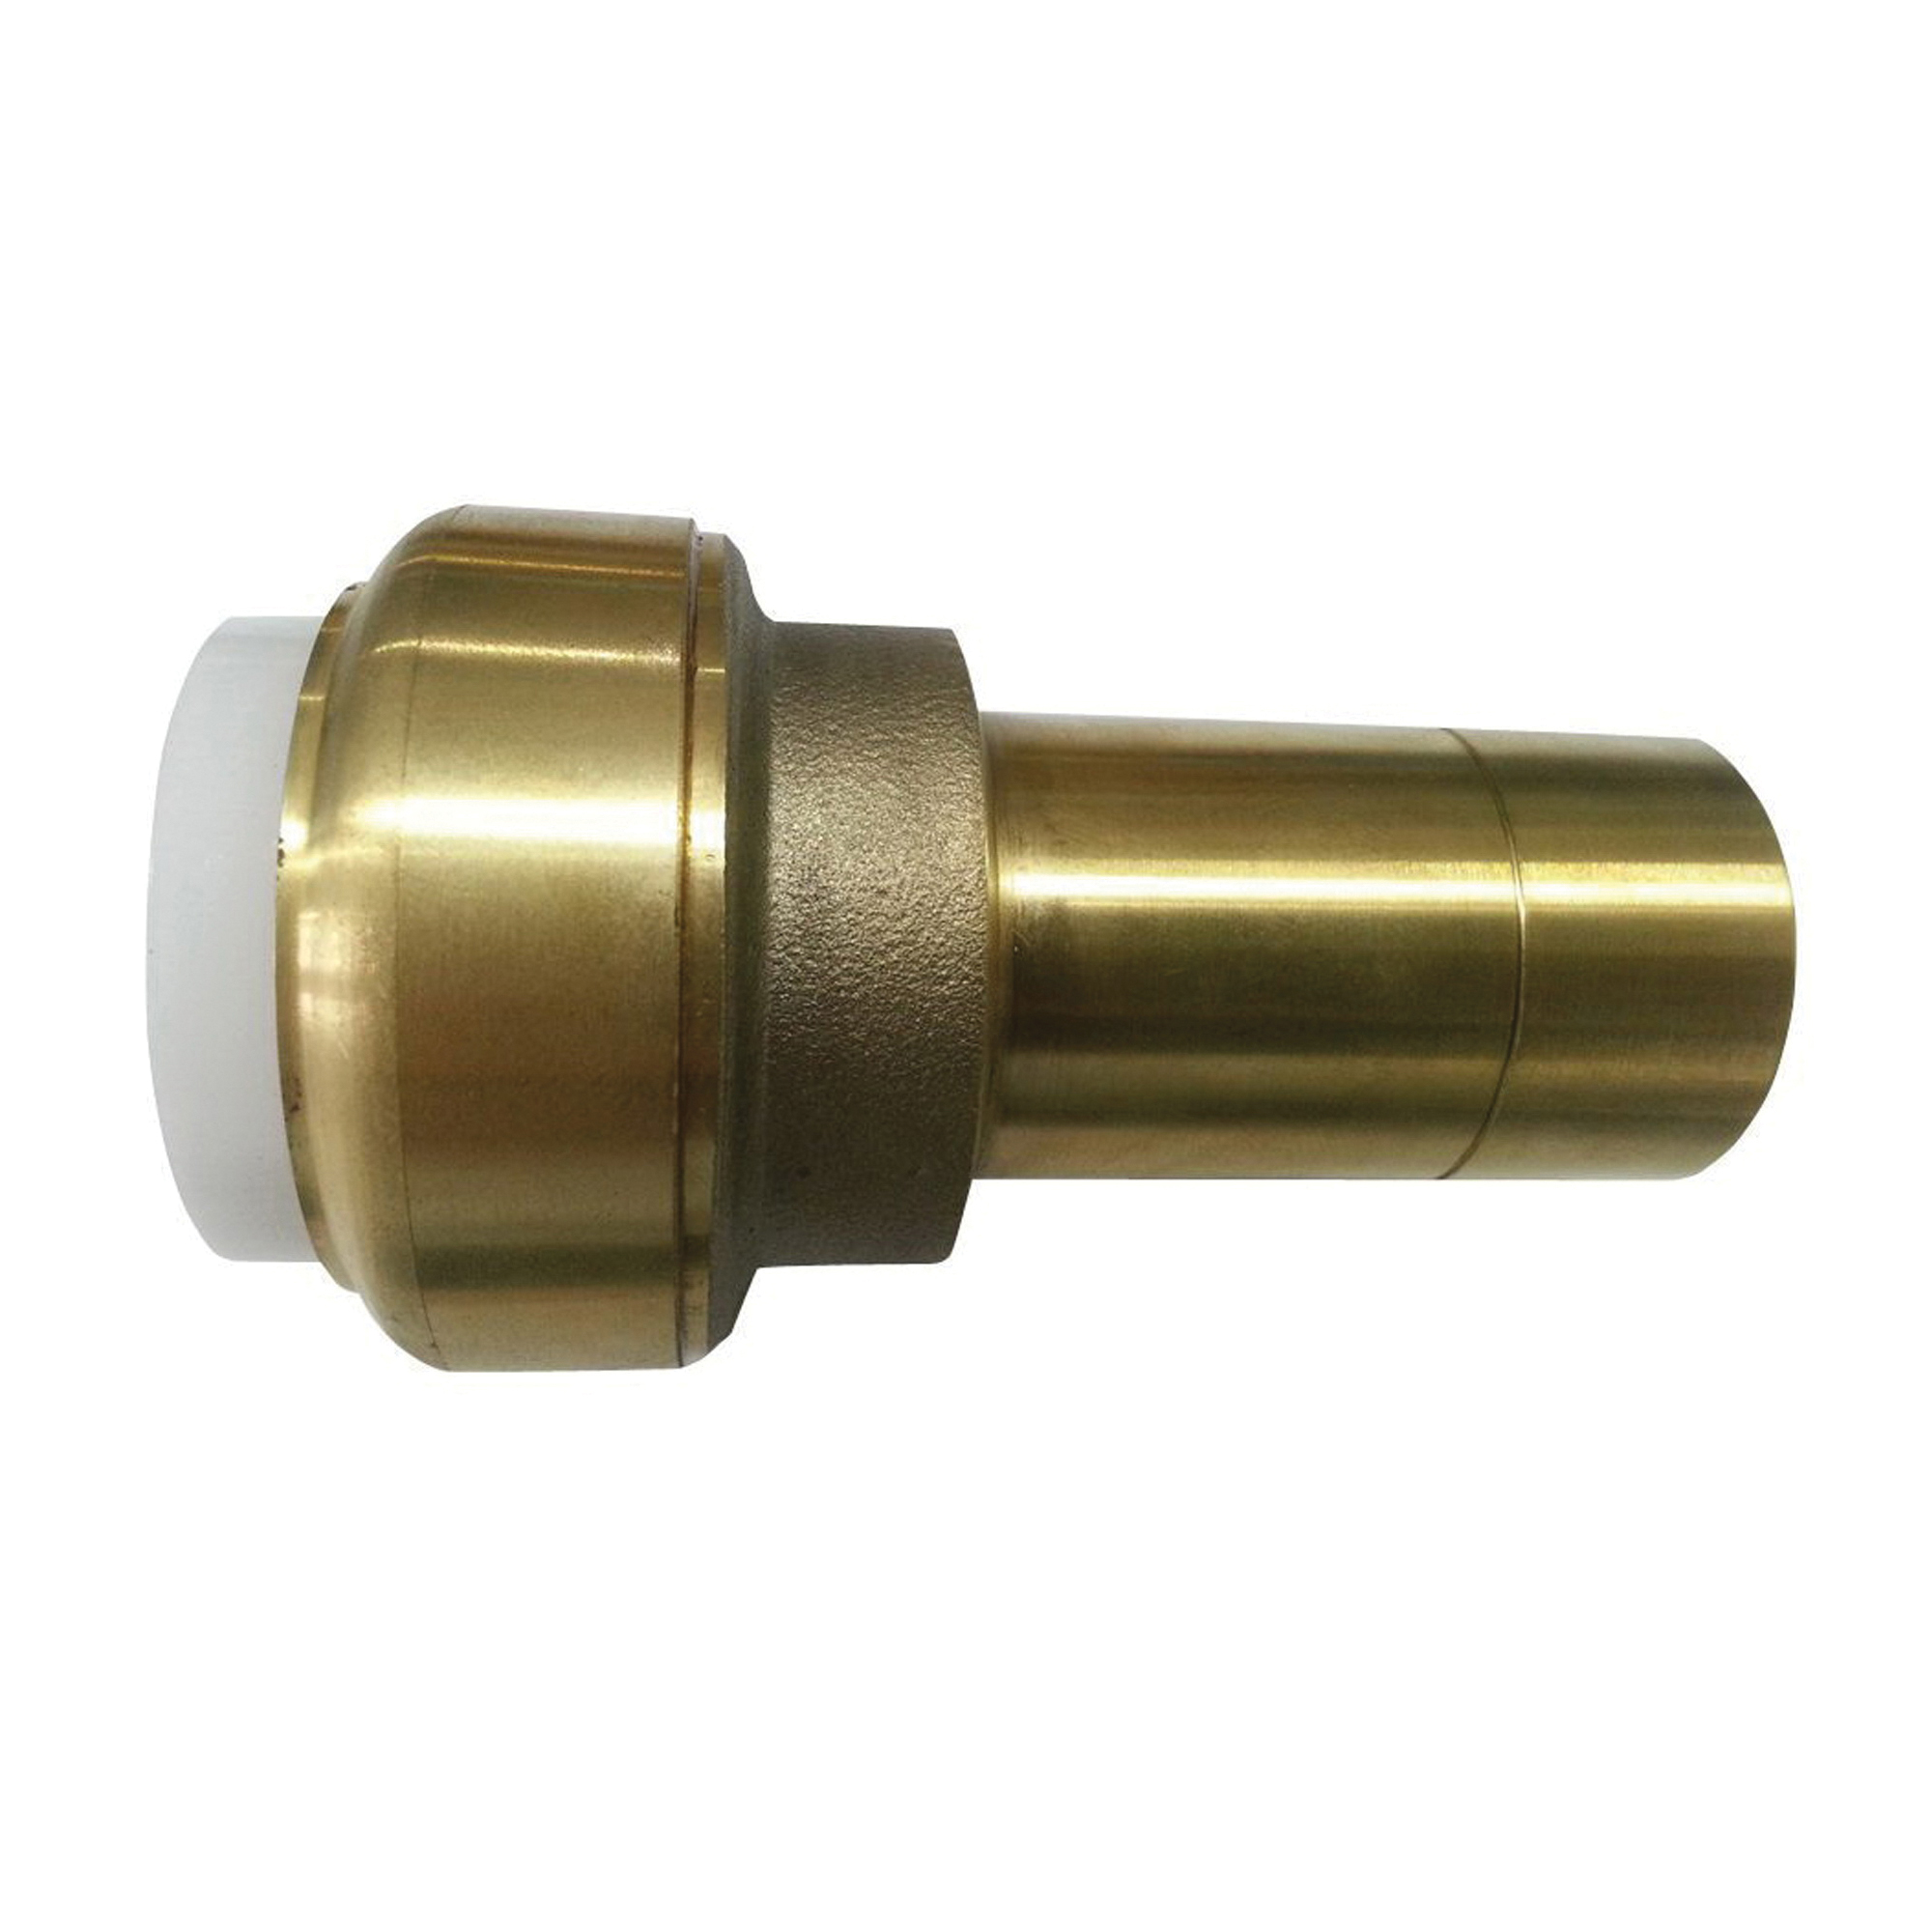 EPC TECTITE™ 10177504 219 Push Transition Adapter, 1 in, C x IPS x Fitting x C, Brass